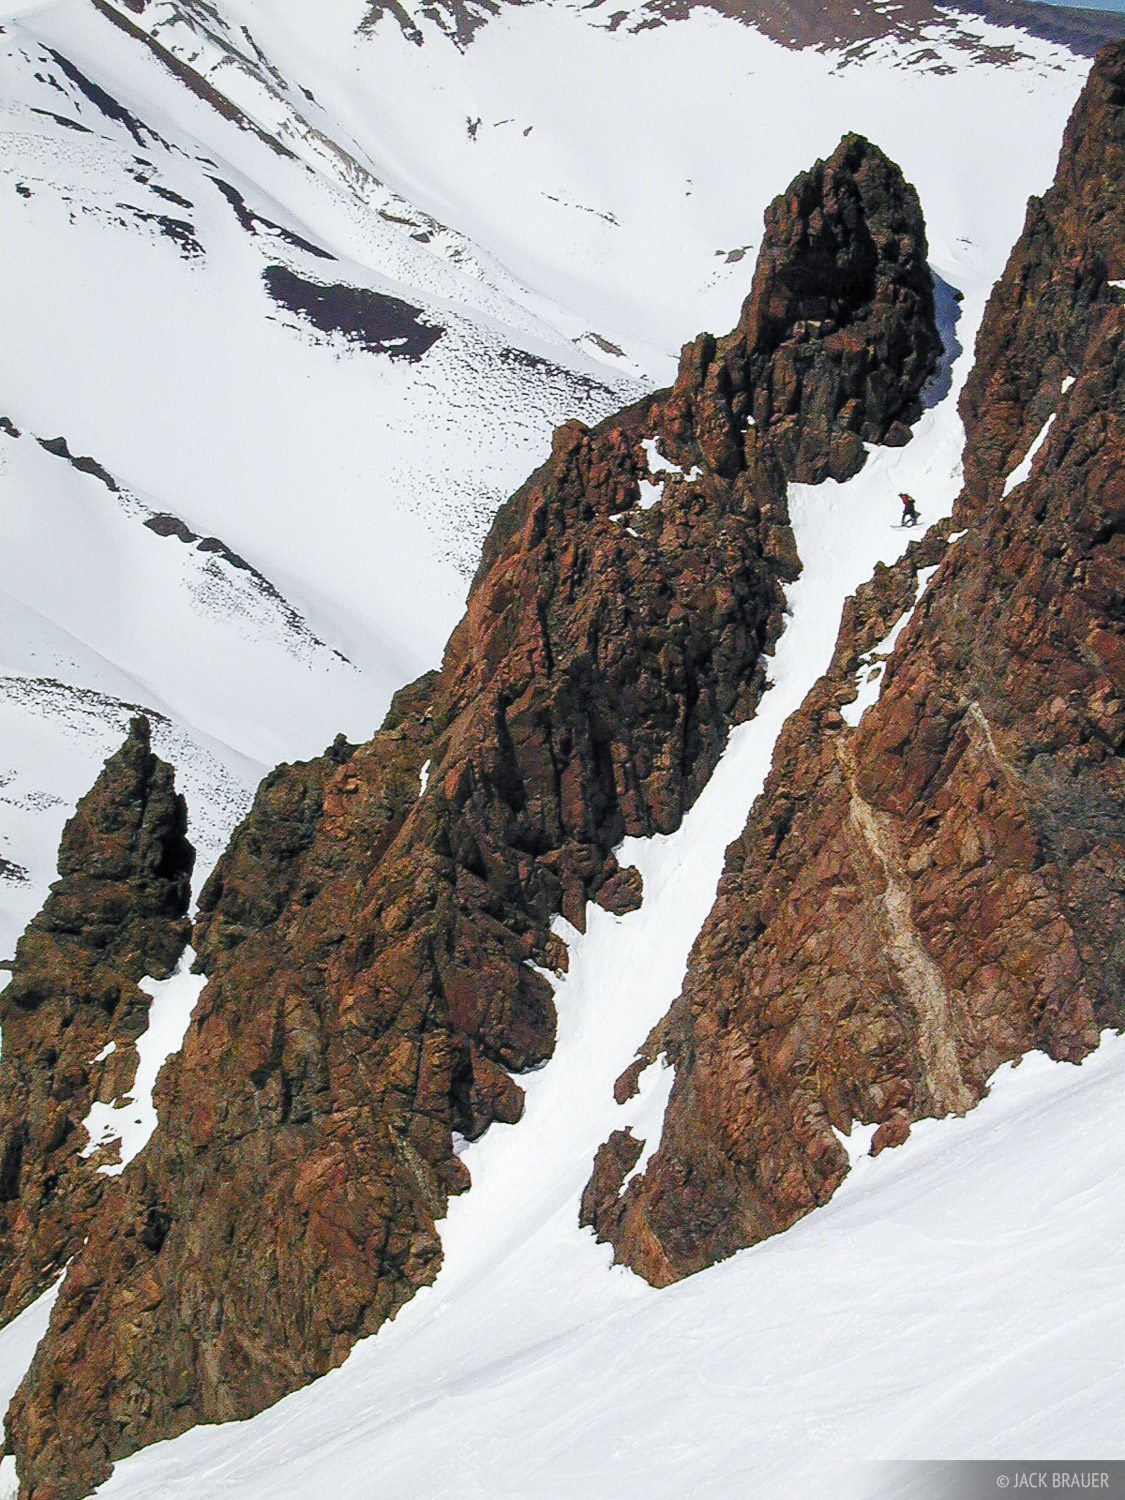 narrow chute, Argentina, snowboarding, Las Leñas, photo